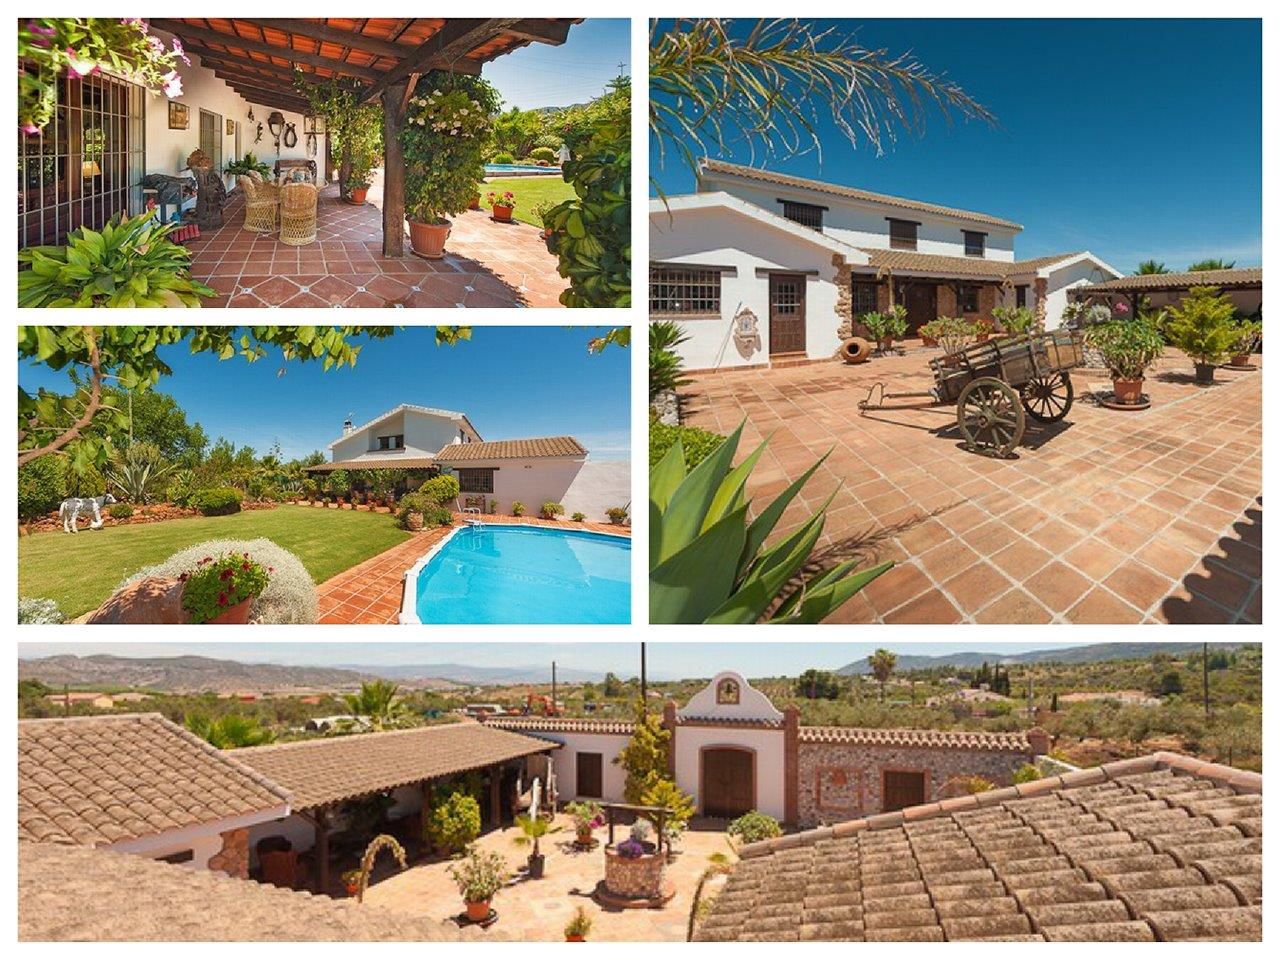 Cortijo for sale in Andalusia